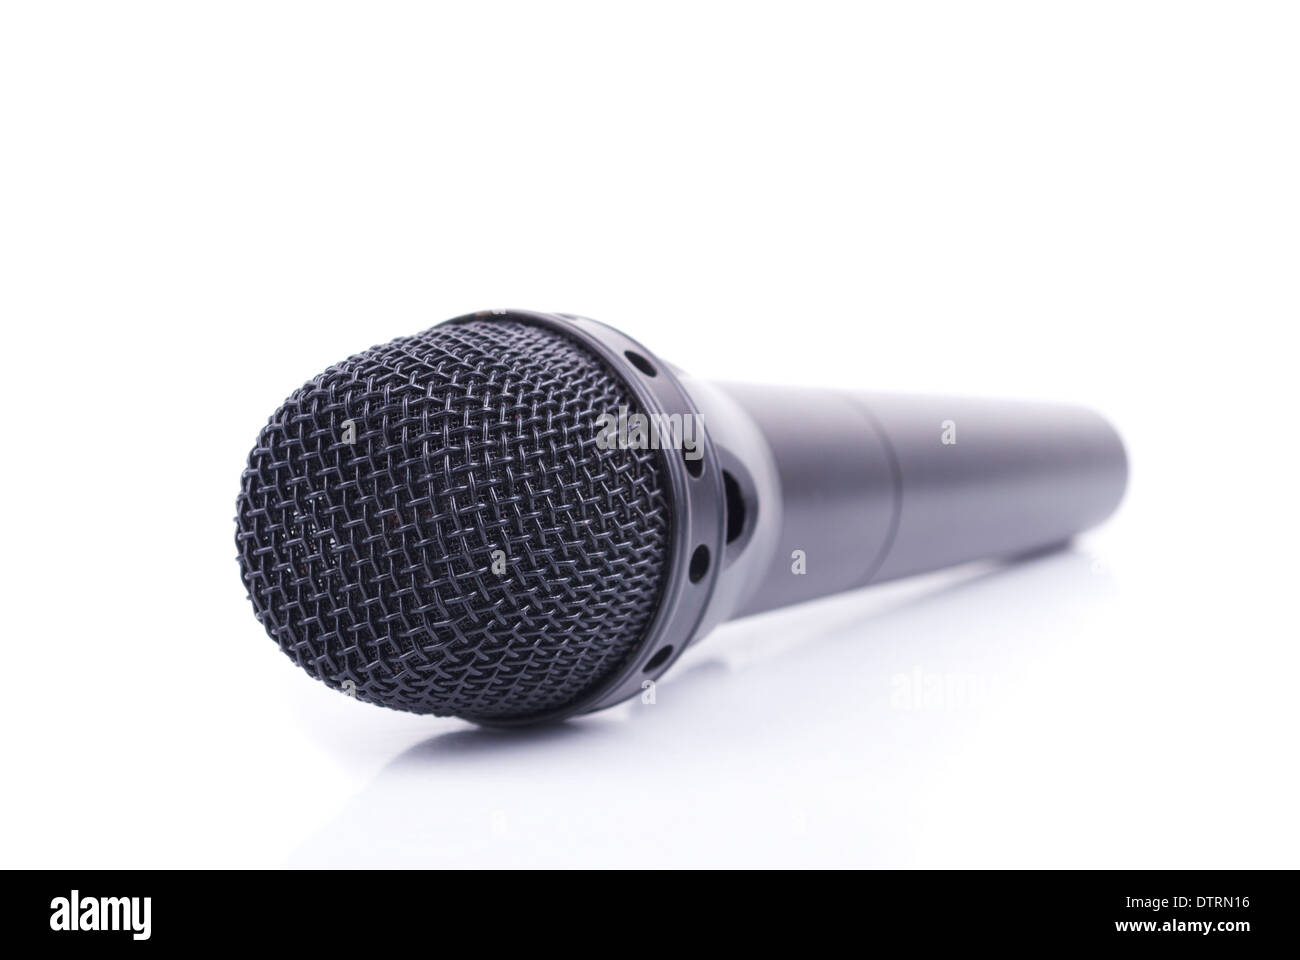 Microphone on a white background. - Stock Image